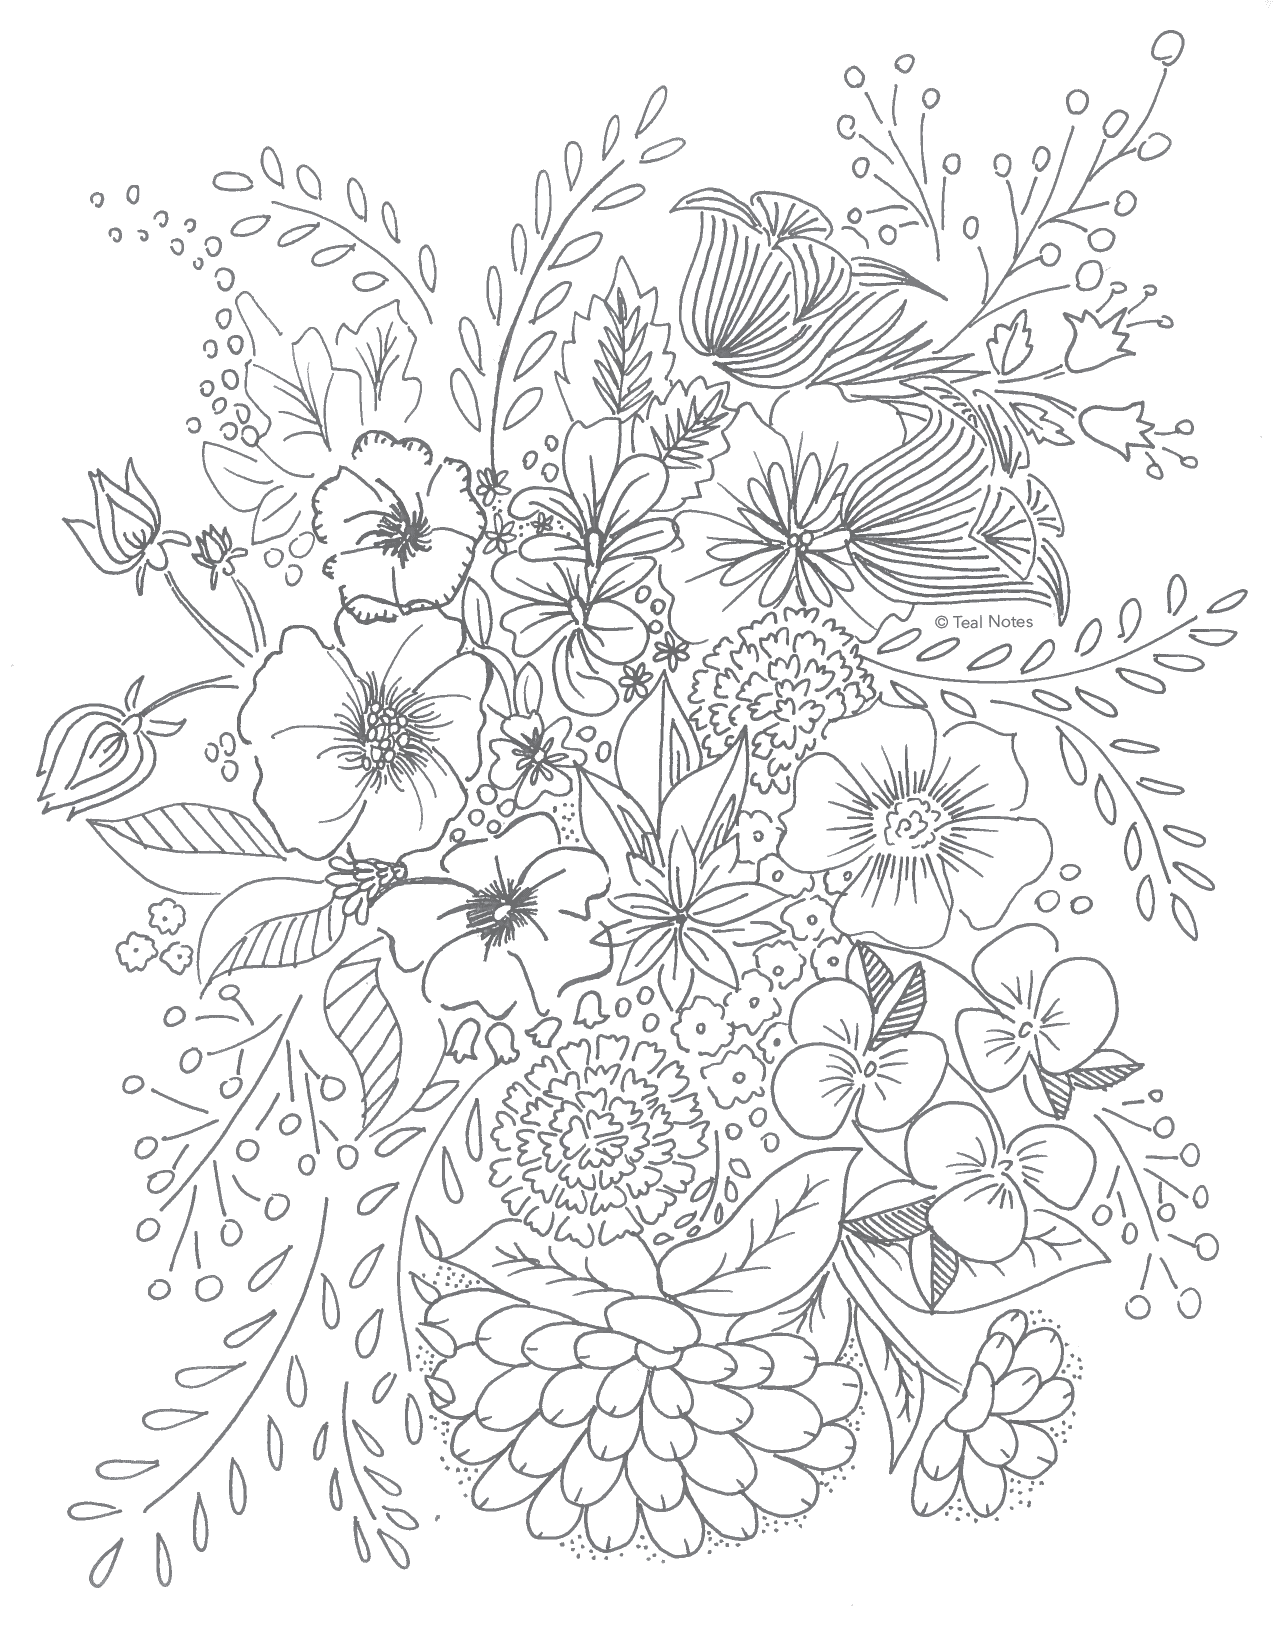 - FREE Adult Coloring Pages: 35 Gorgeous Printable Coloring Pages To De-Stress